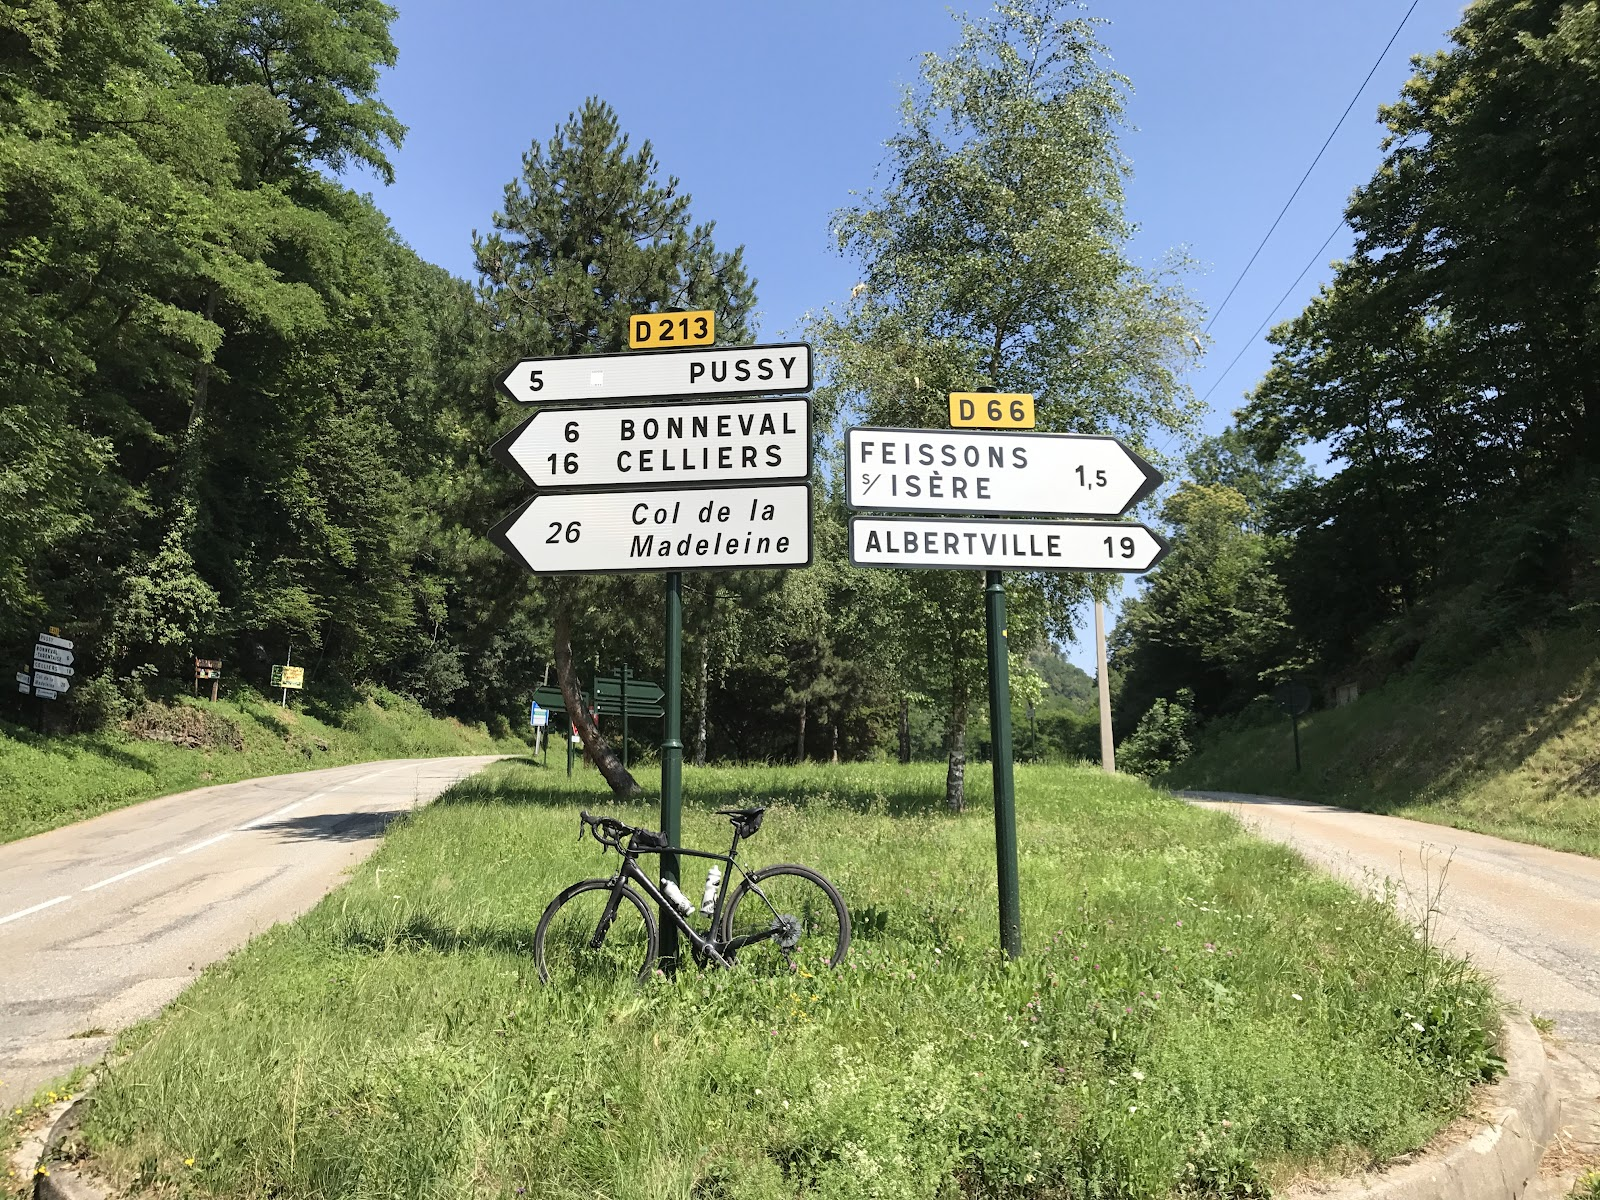 Bicycle ride of Col de Madeleine from La Léchère - start with roadway sign and bike